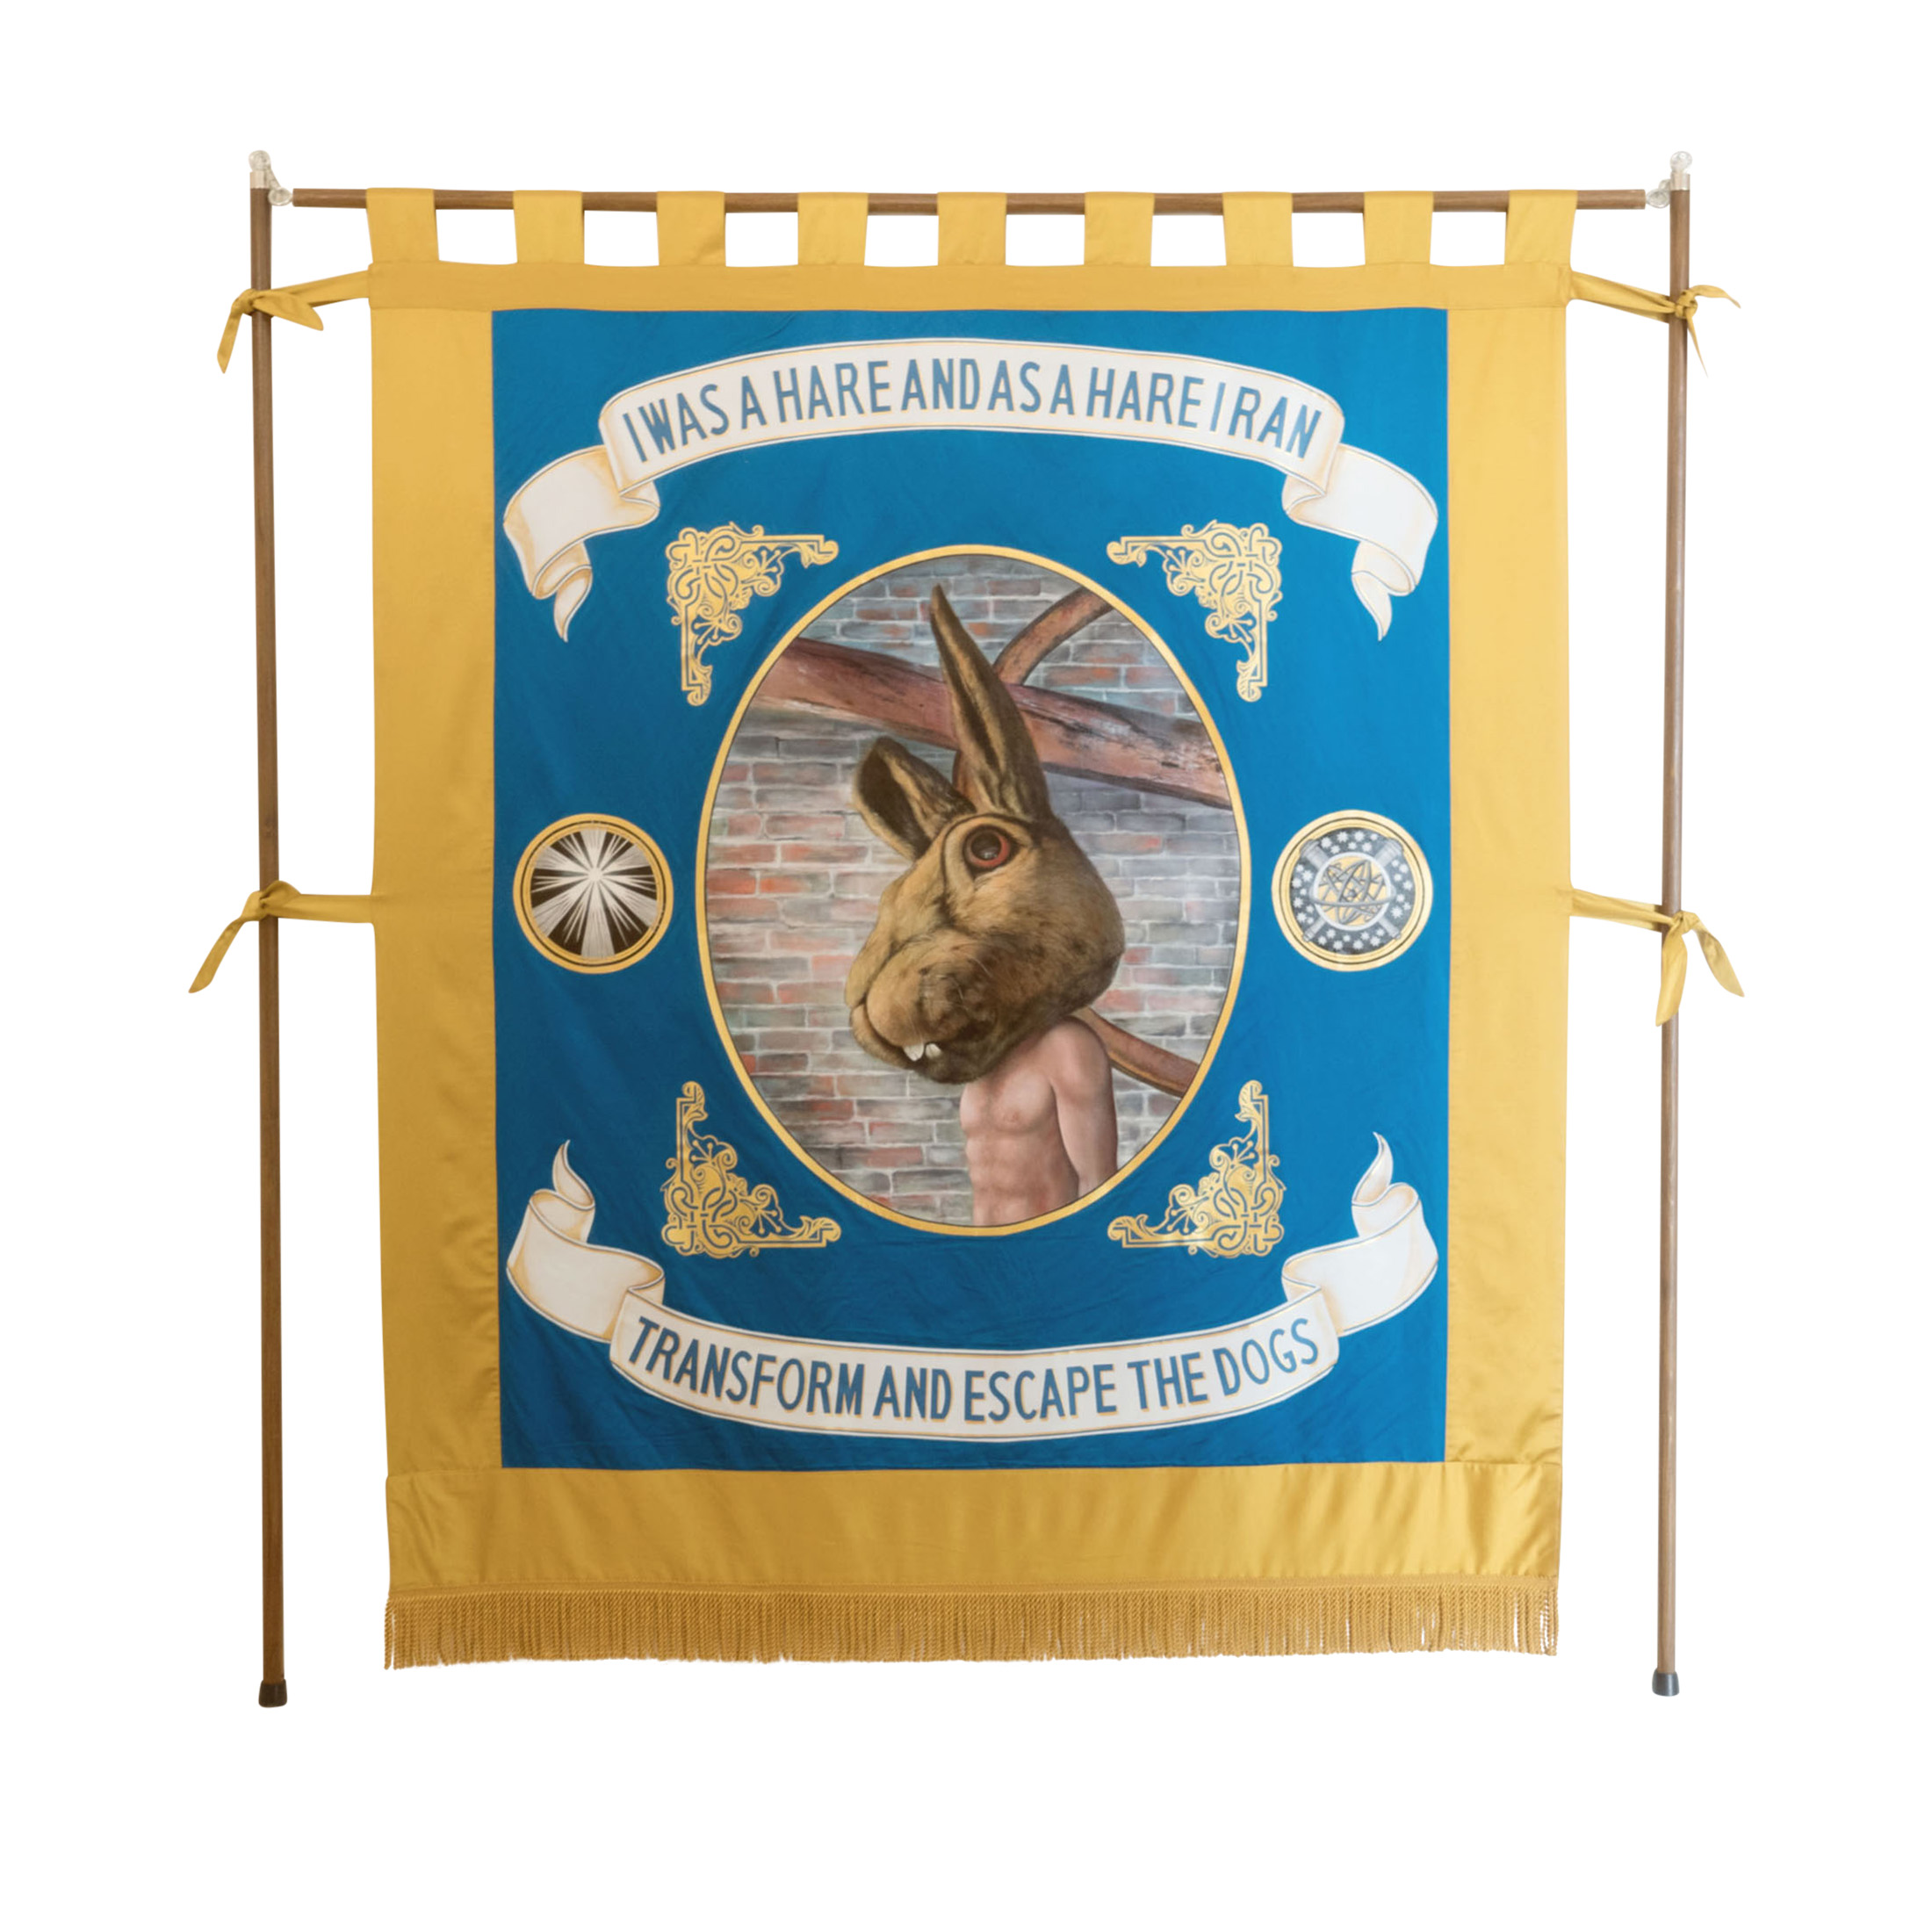 Jamie-Holman-I-was-a-Hare-and-a-Hare-I-Ran-Banner